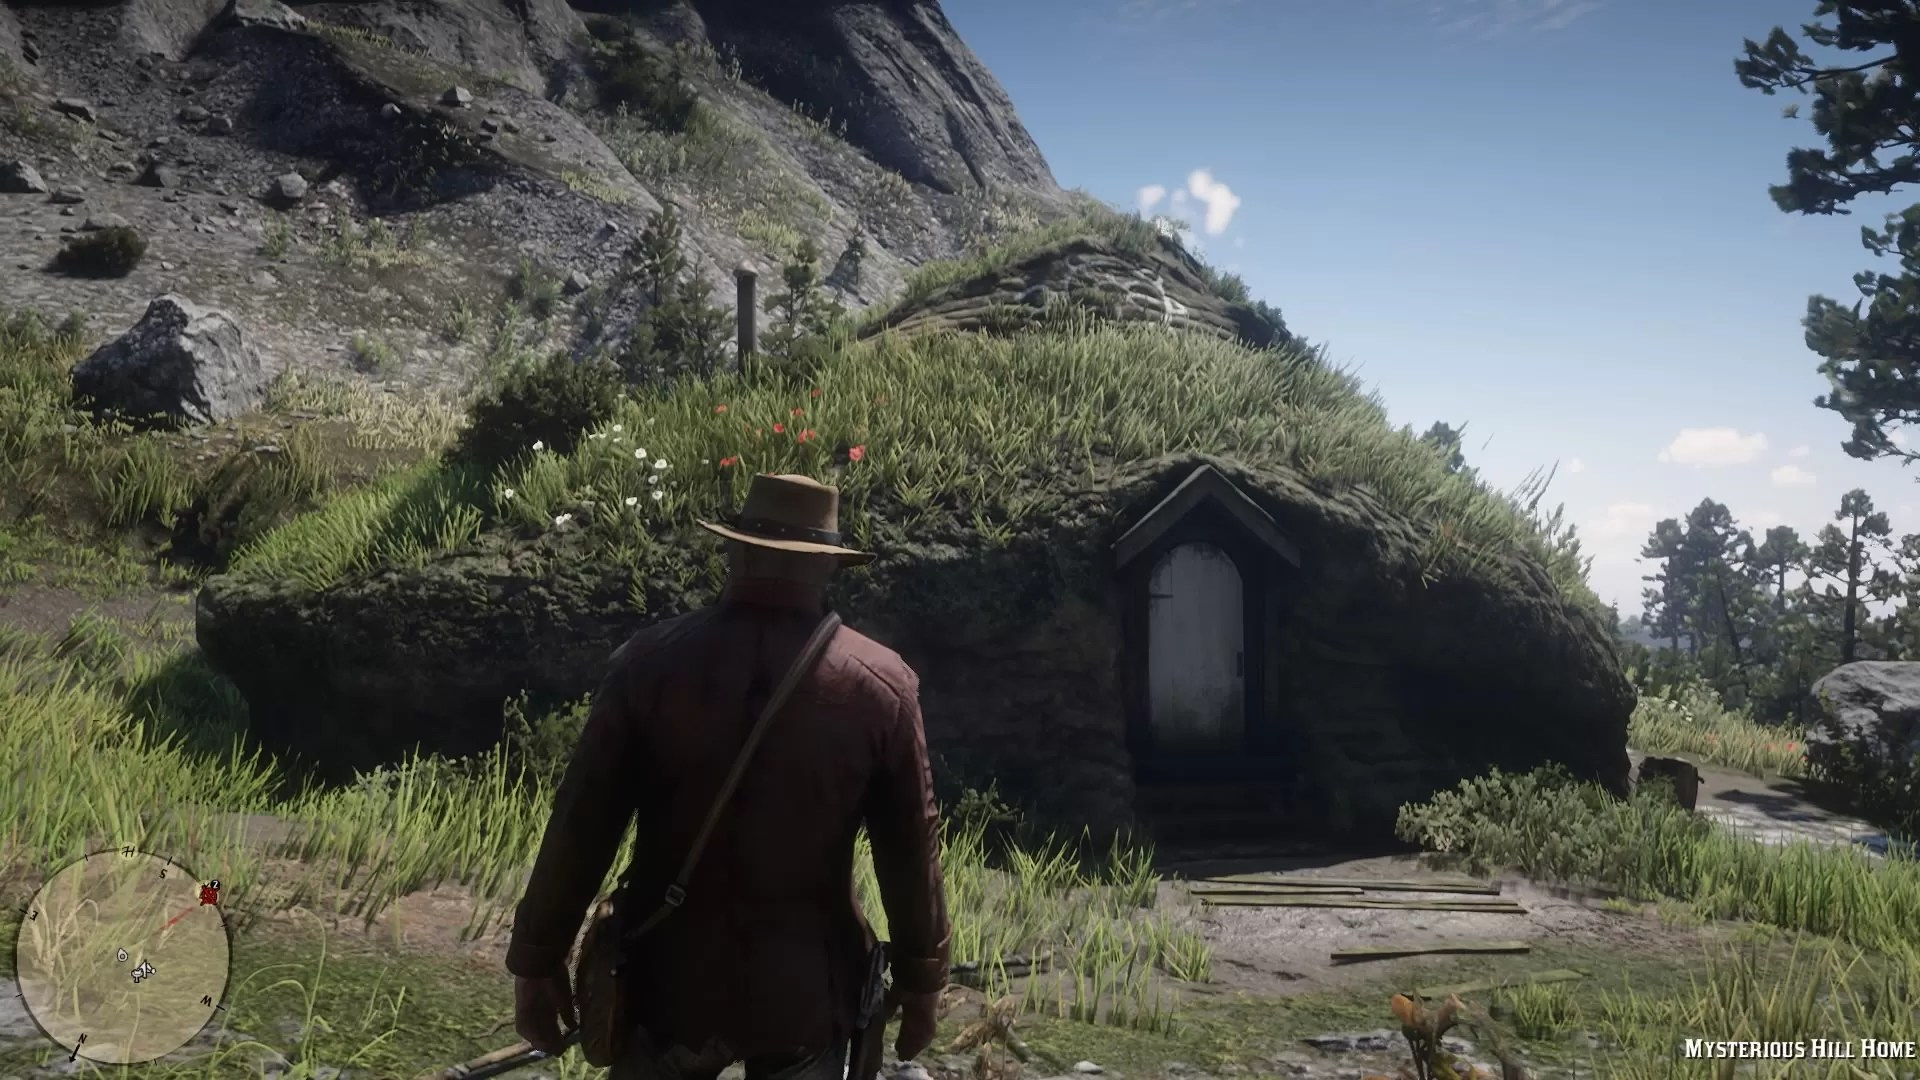 red dead redemption 2 mysterious hill home